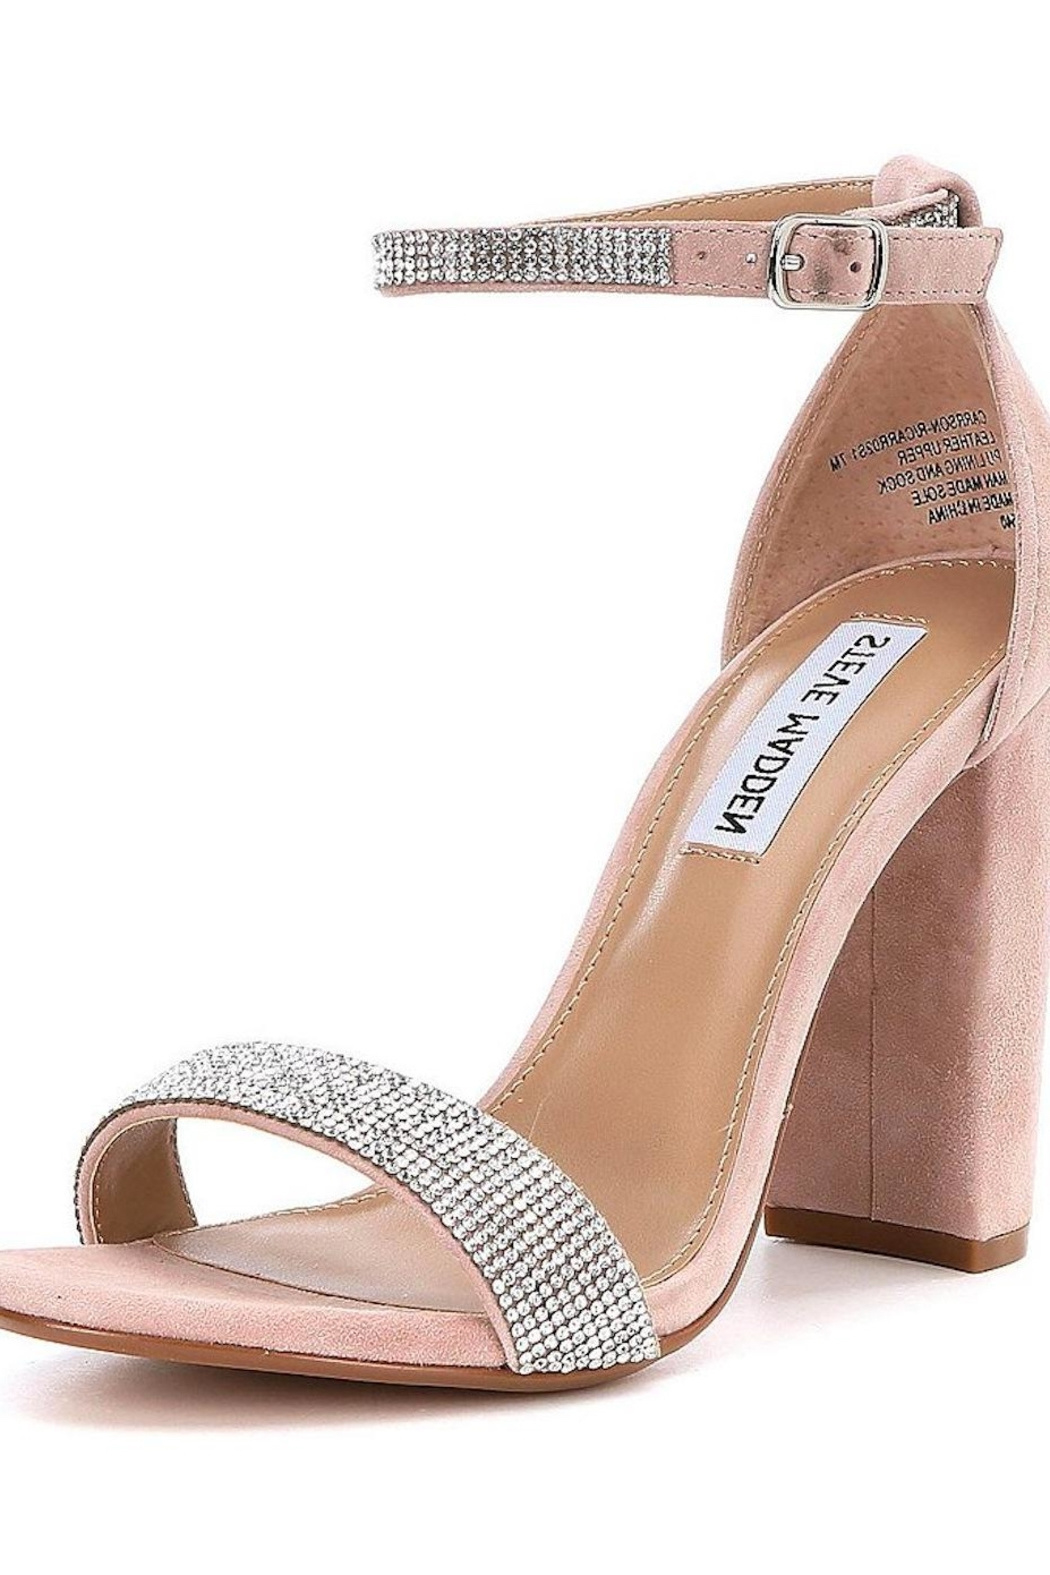 5677440b932c Steve Madden Rhinestone Block Heel from Guilford by A s Unique ...